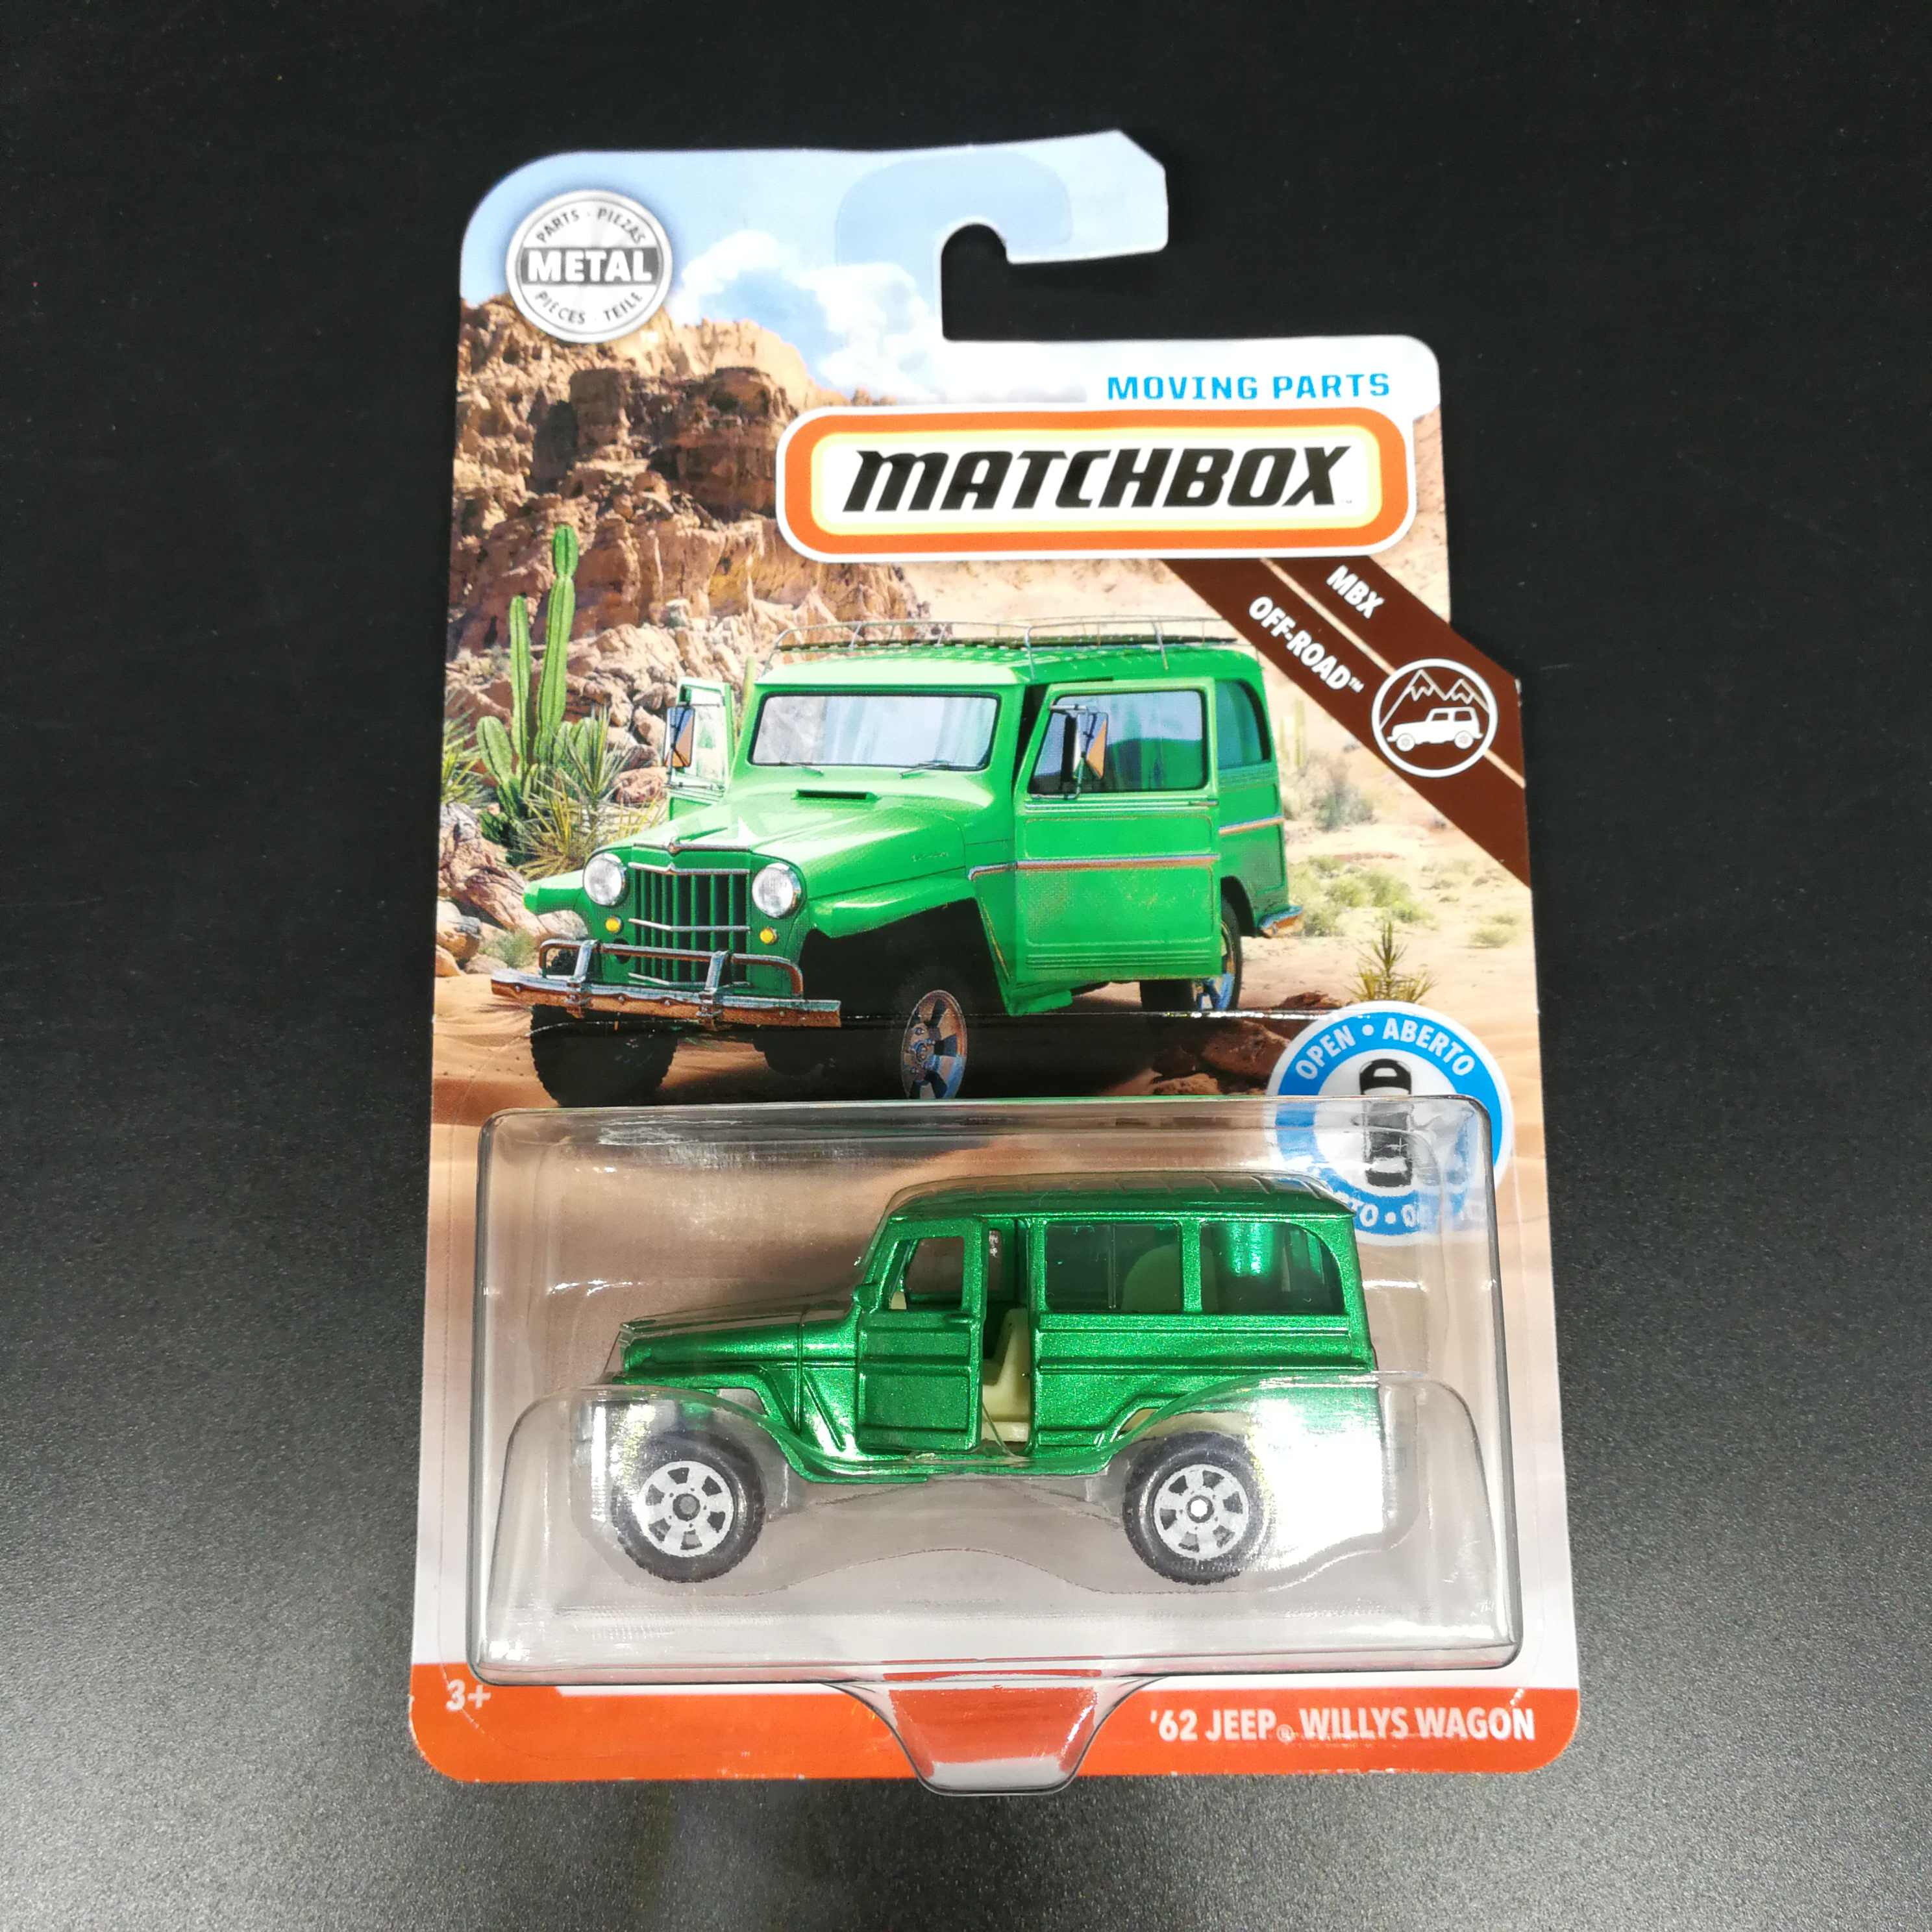 2019  Matchbox Car 1:64 Sports 62 JEEP WILLYS WAGONX Metal Material Body Race Car Collection Alloy Car Gift